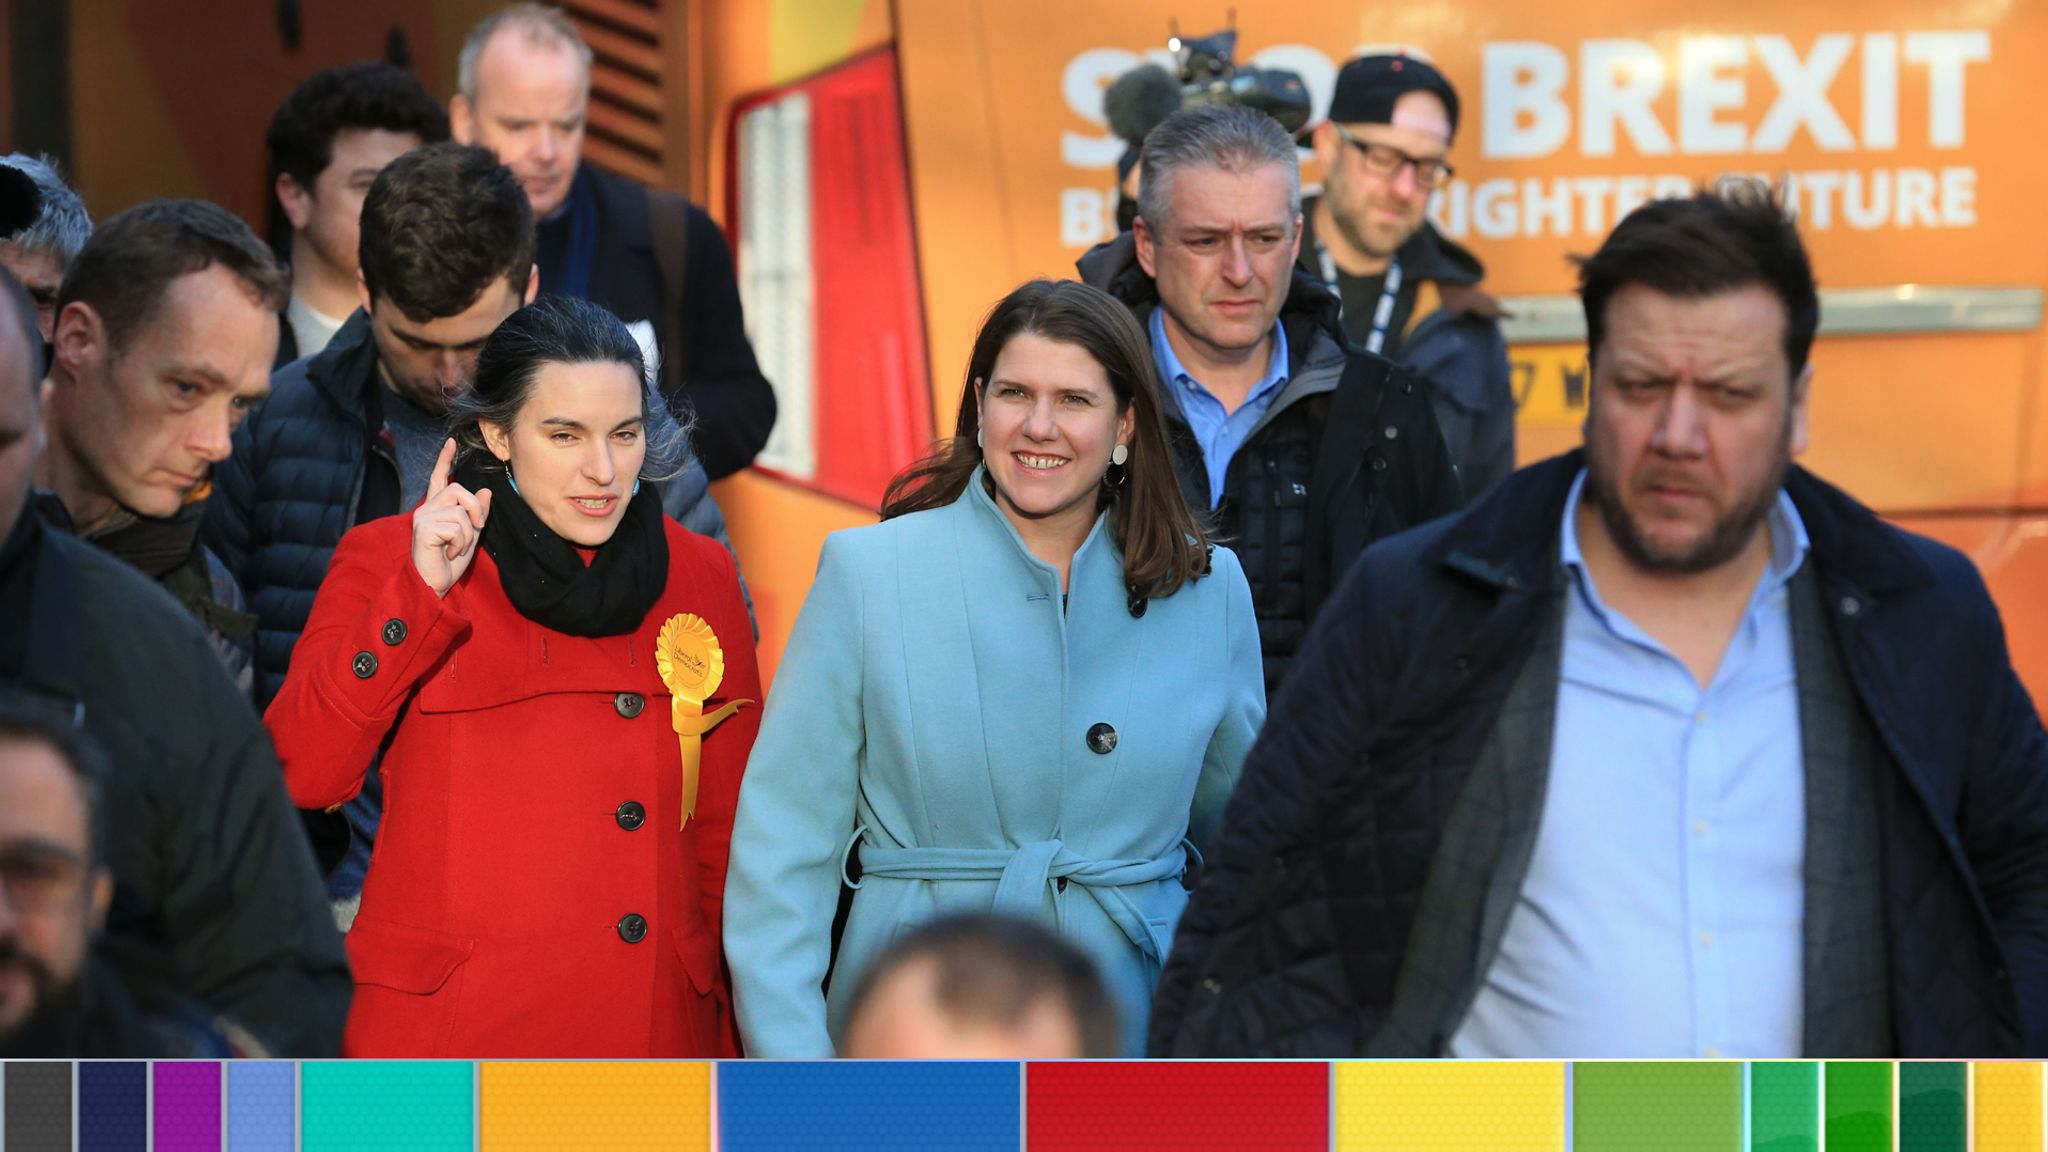 General election: Jo Swinson hints she would work with Labour if Jeremy Corbyn quit